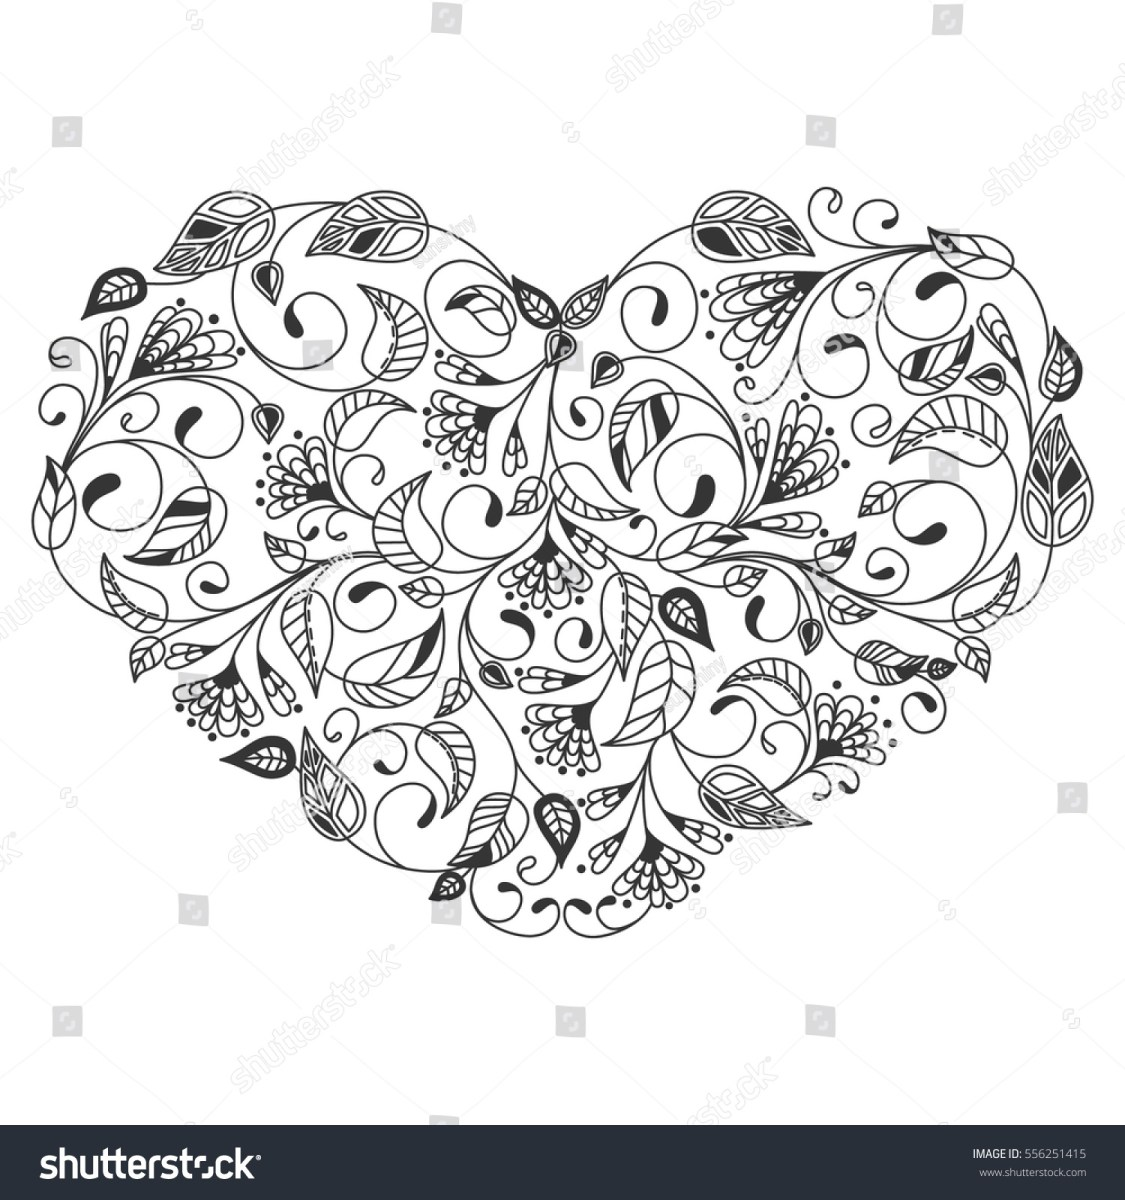 Heart Coloring Pages For Adults Coloring Page Coloring Pages Printable Heart Free For Book Page